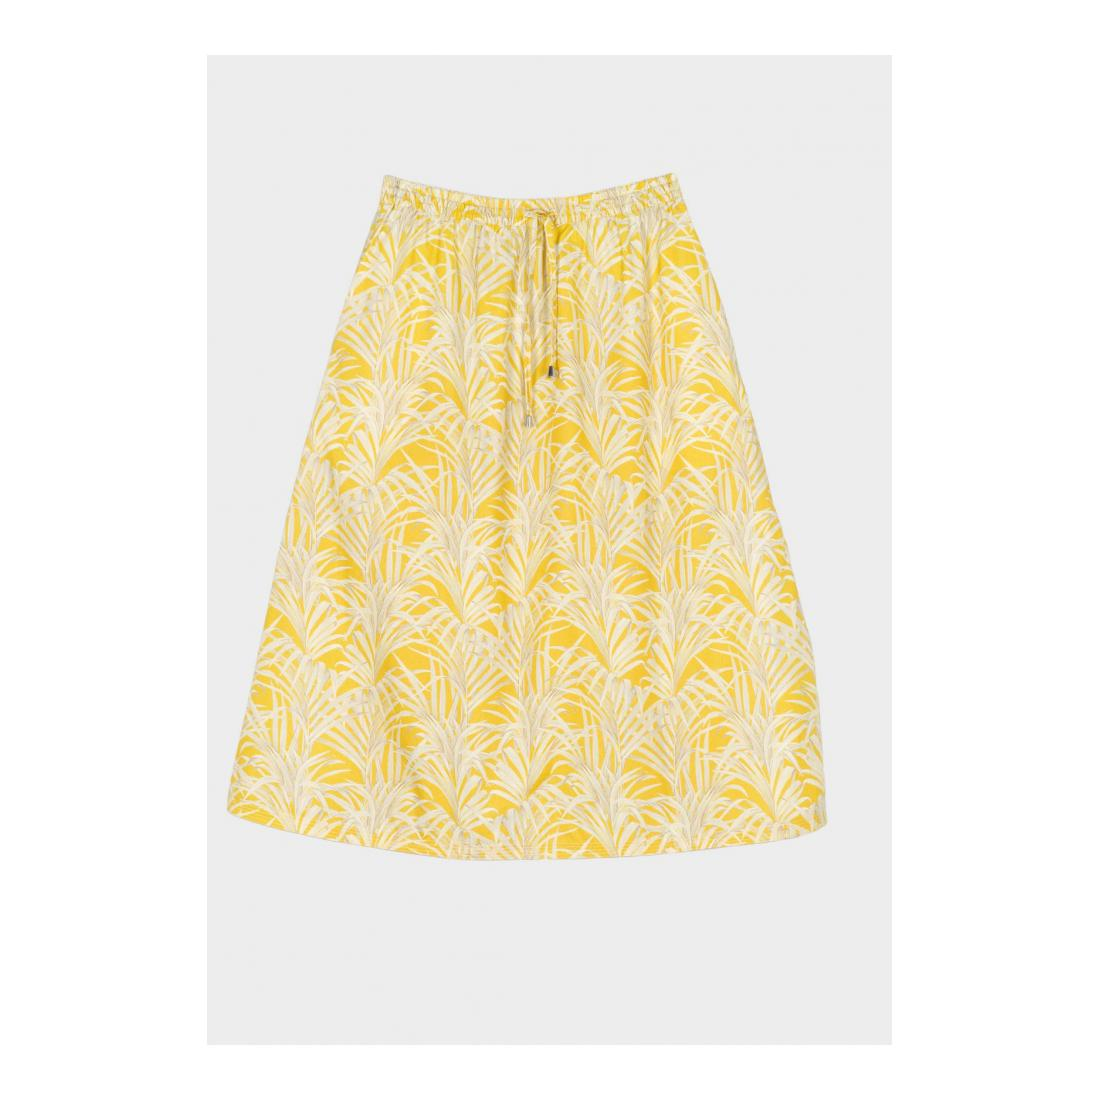 UNQ Röcke normal Damen Skirt